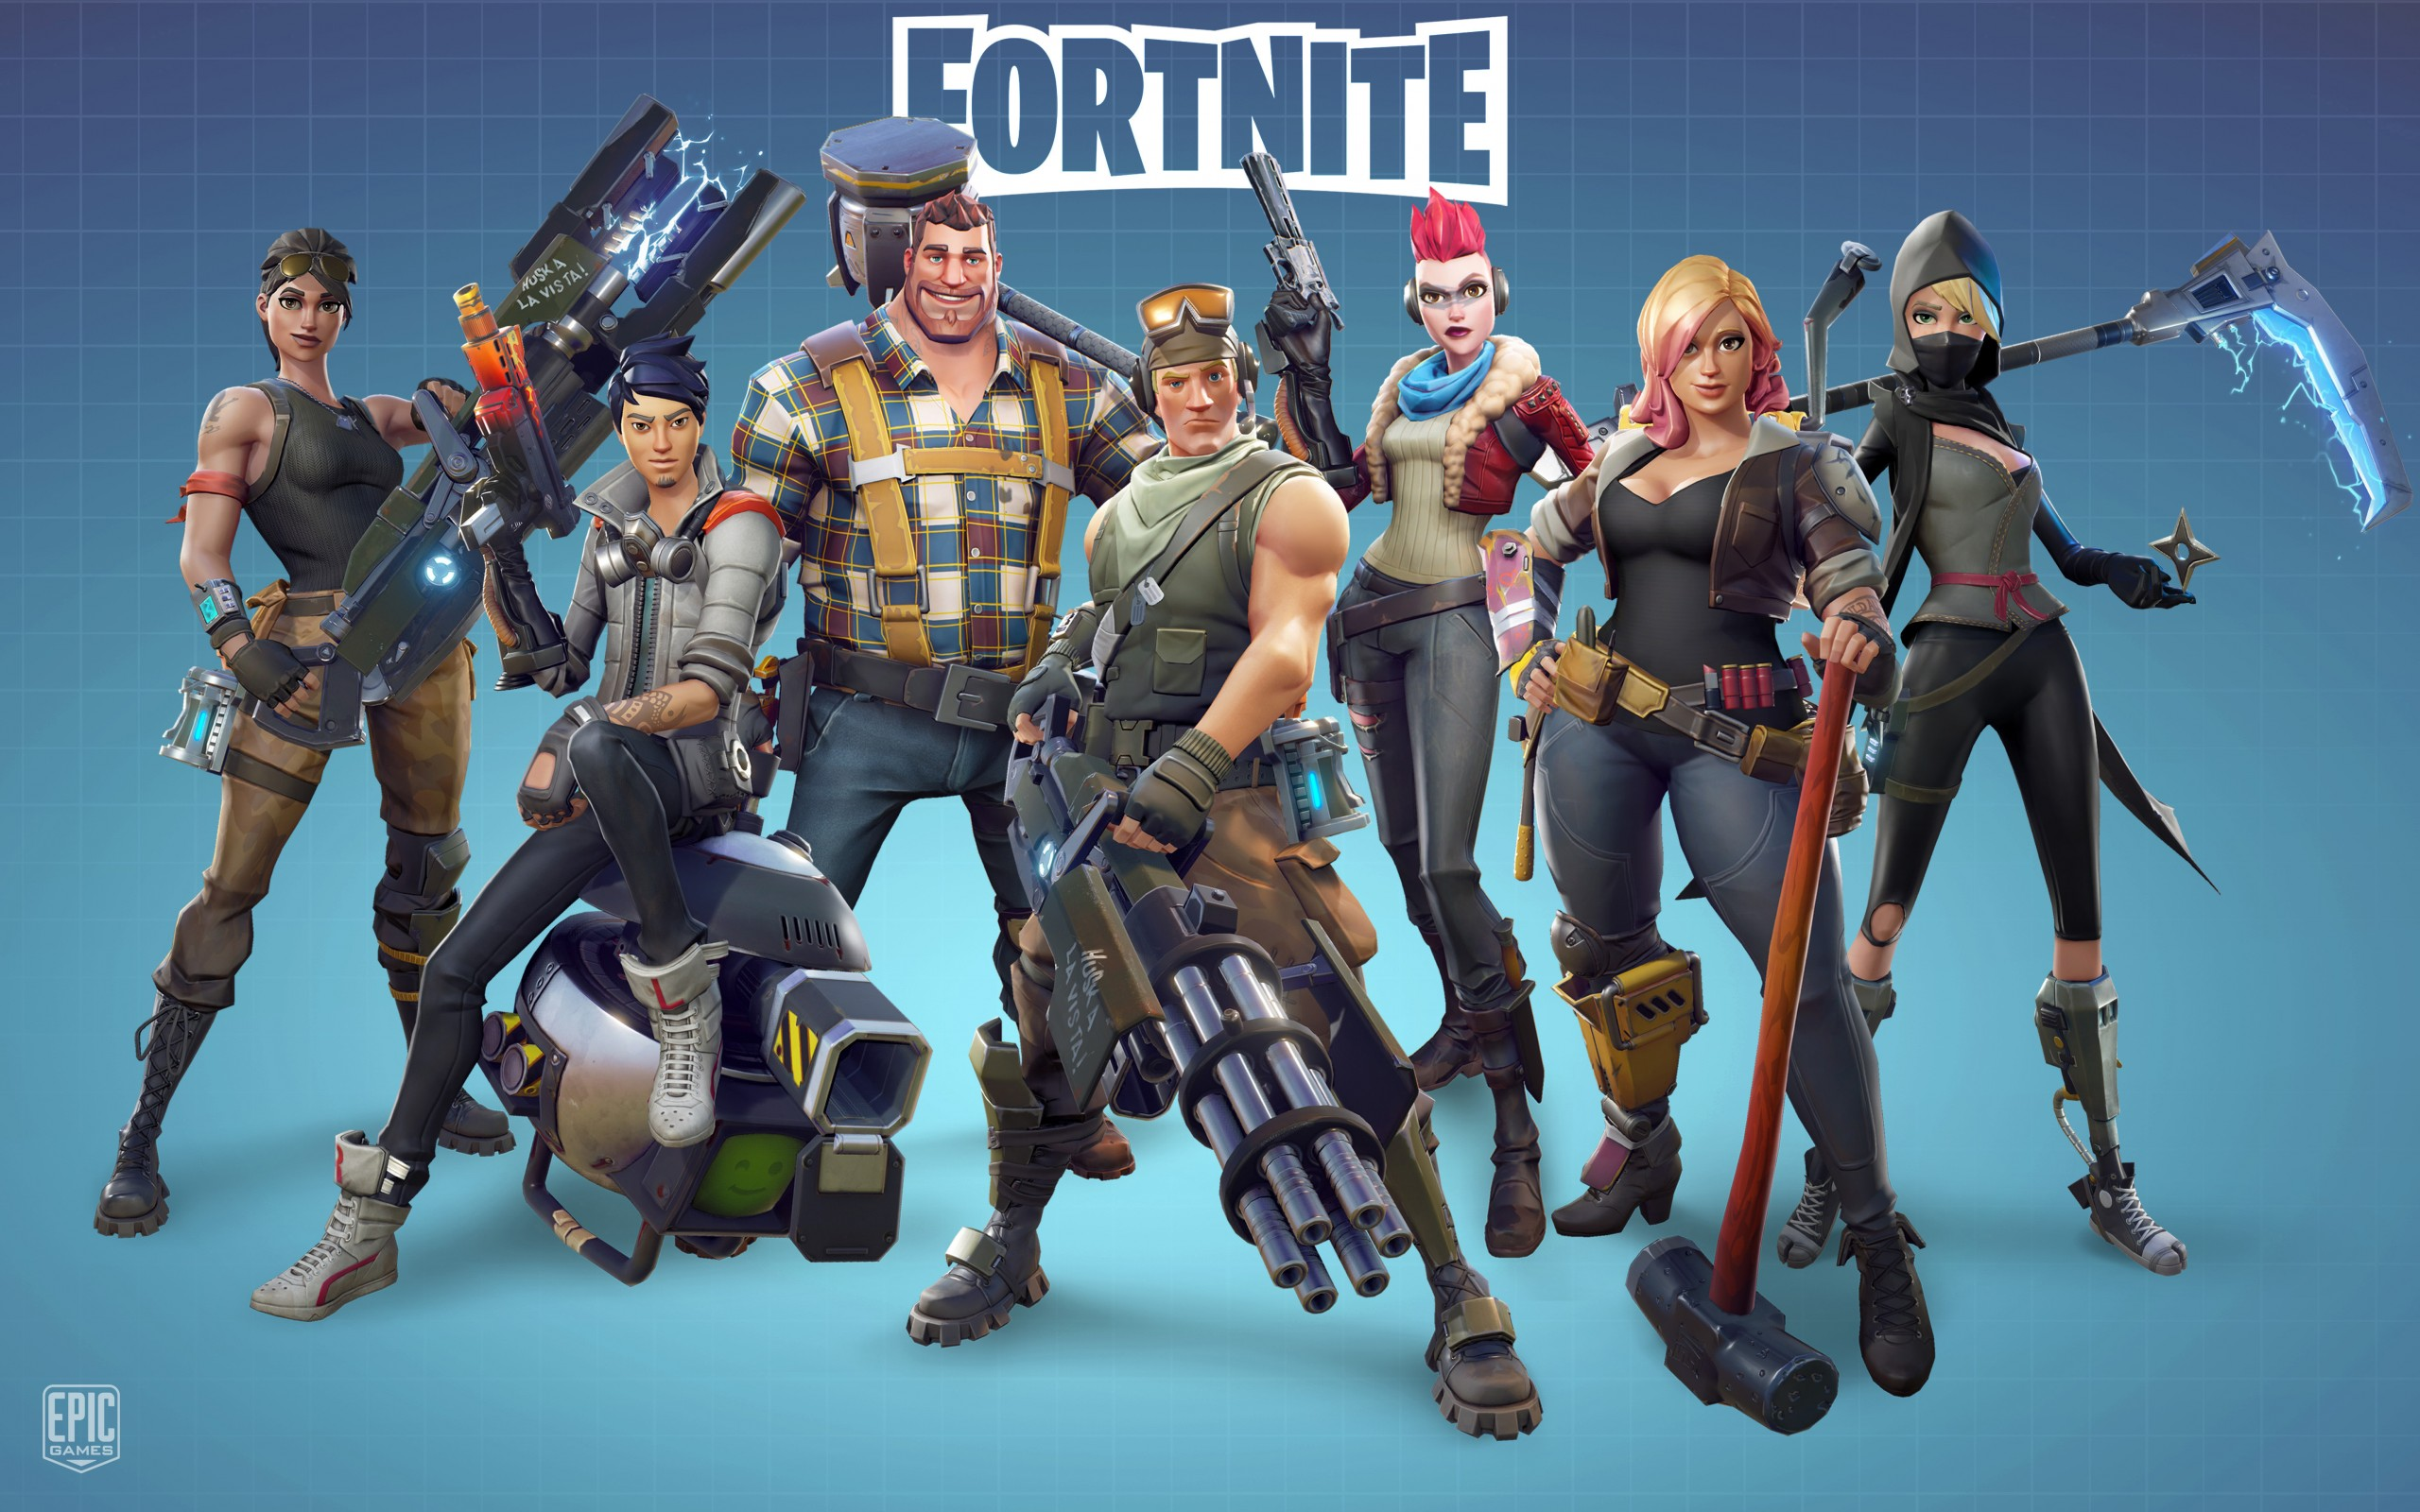 fortnite video game wallpaper background 62256